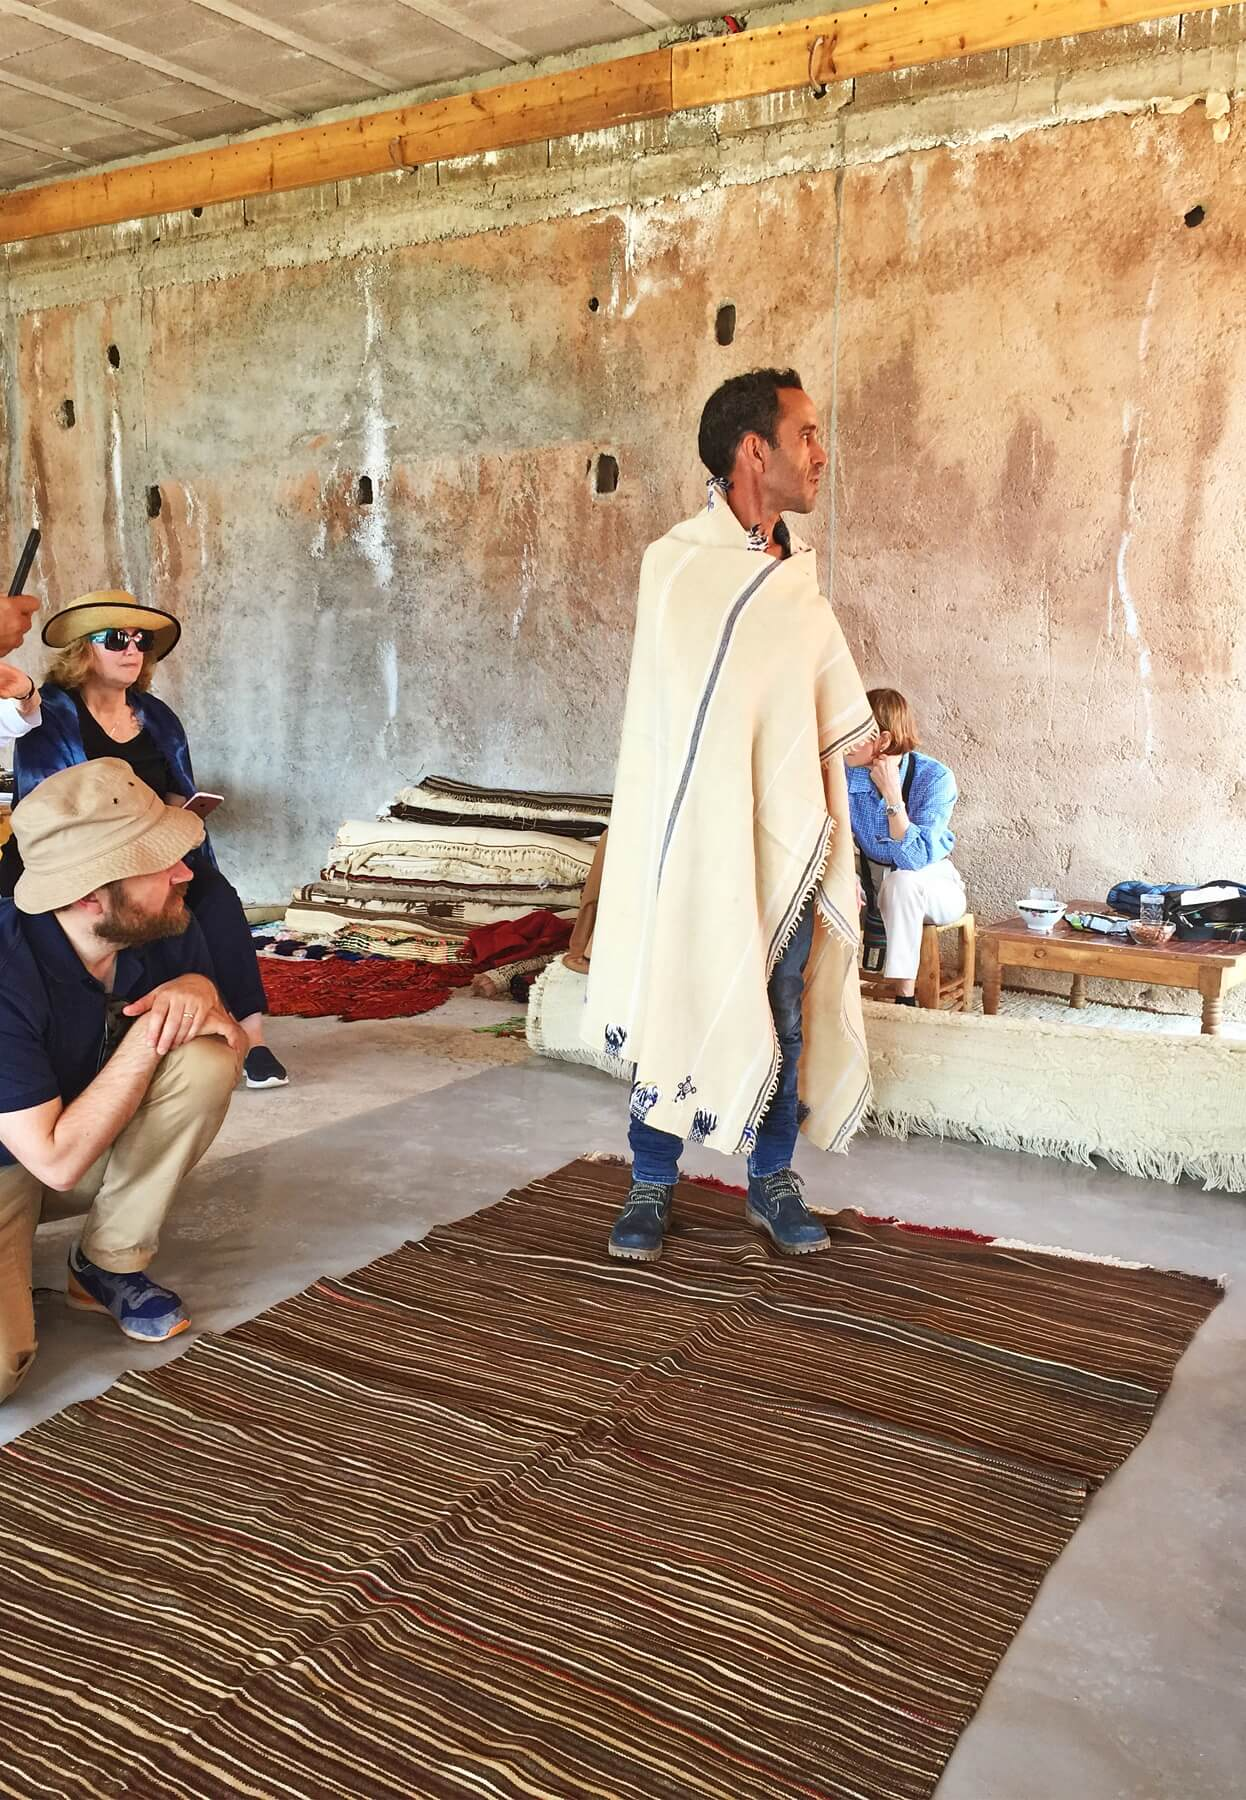 Mustafa Hanseli, lead designer of Jan Kath, shows off his personal collection of rugs and textiles for the group.